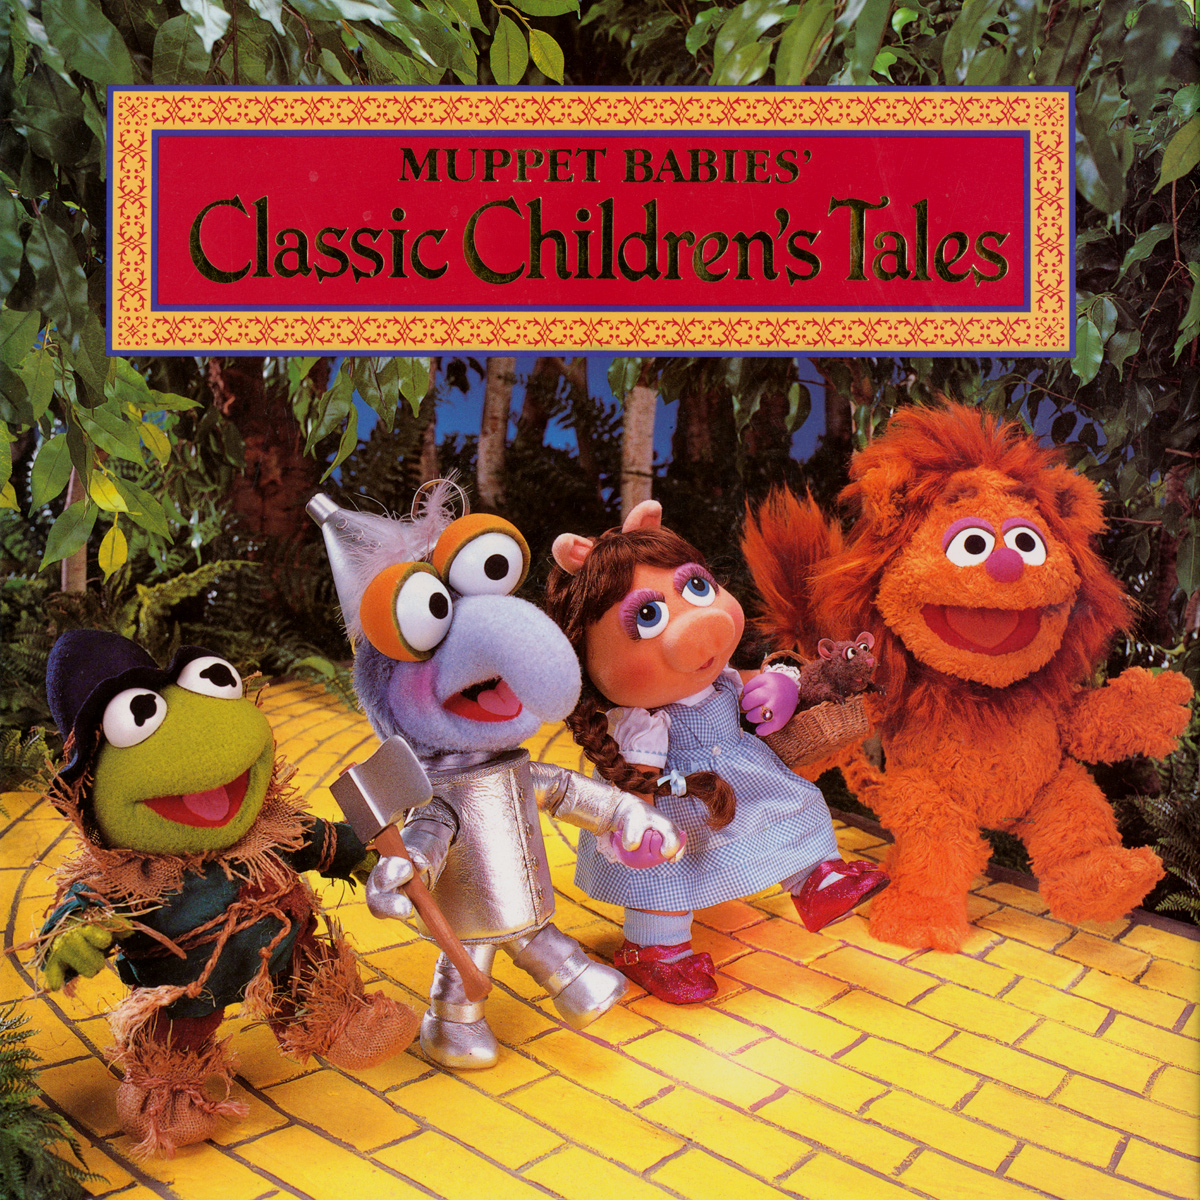 muppet babies 39 classic children 39 s tales muppet wiki. Black Bedroom Furniture Sets. Home Design Ideas